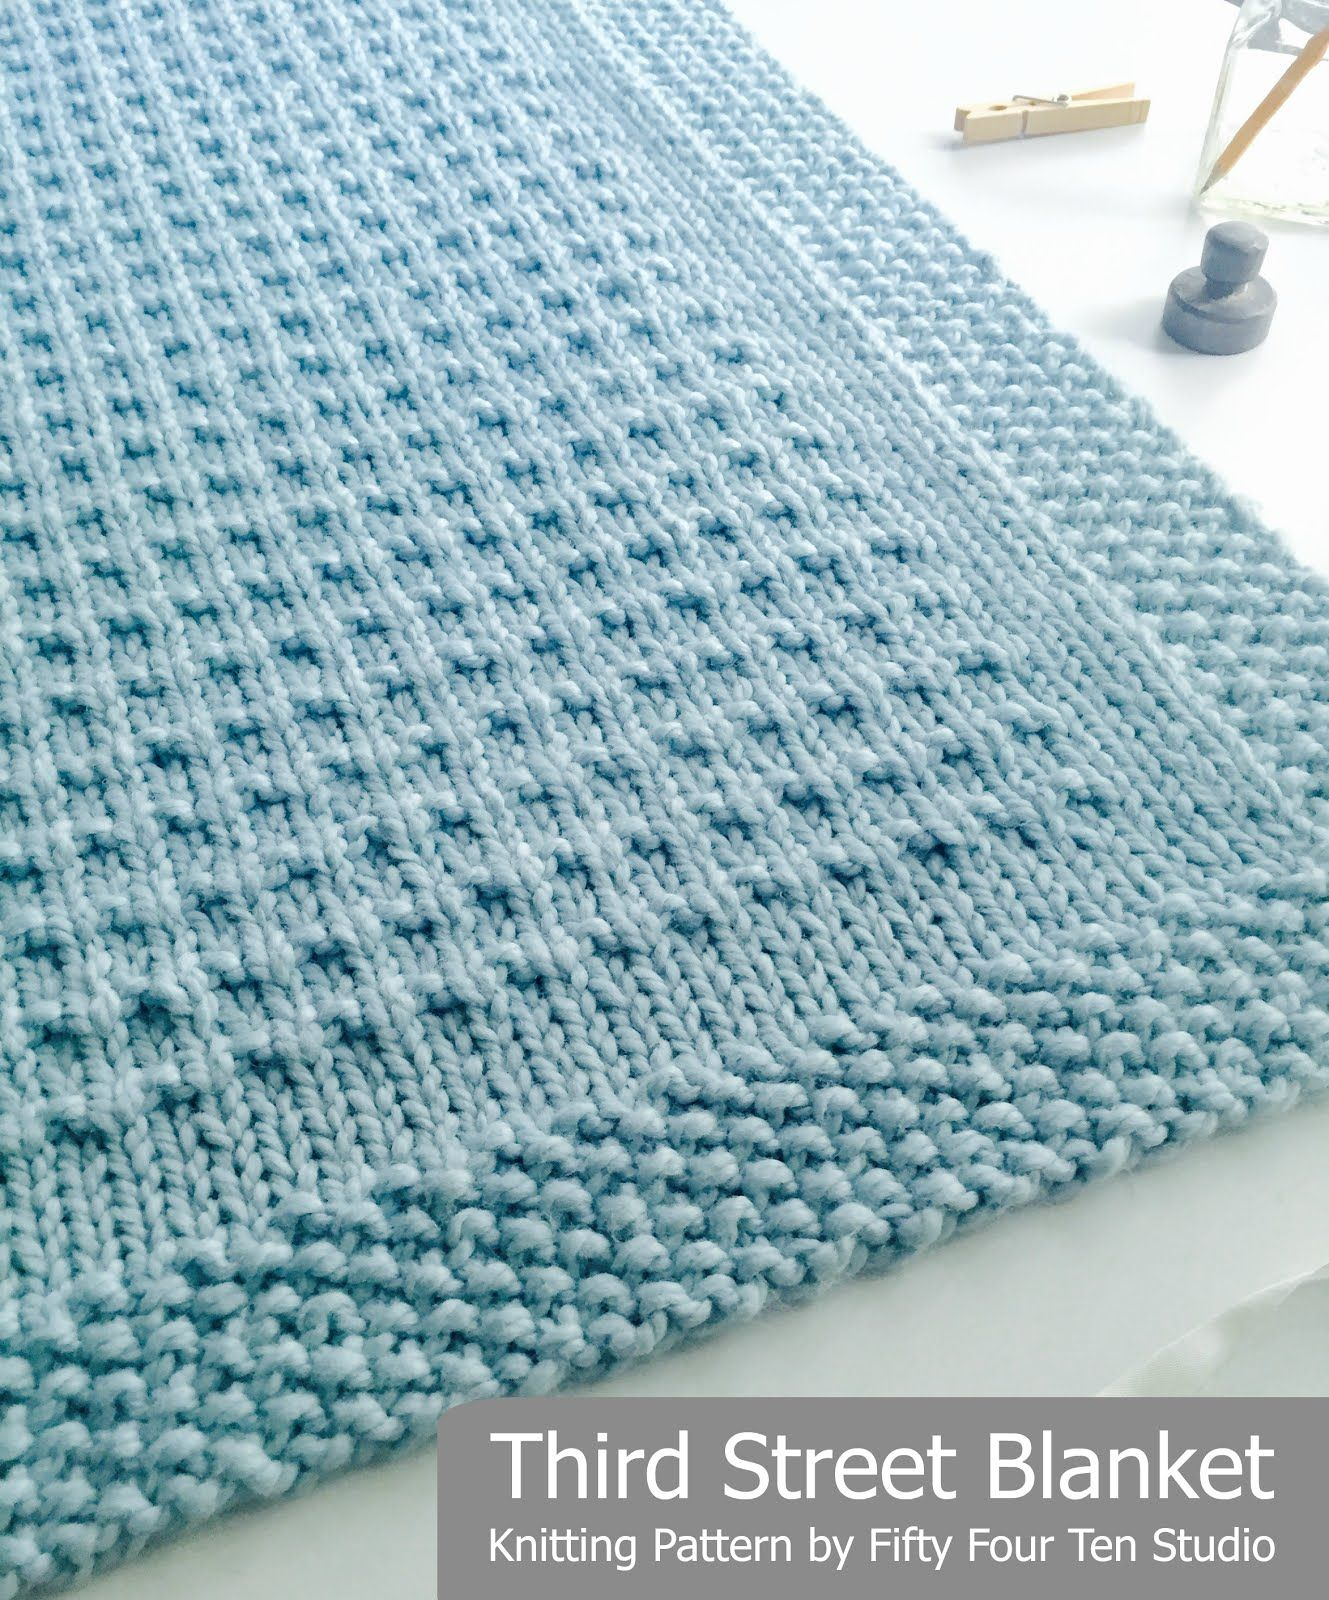 Knitting Quilt Patterns : Third street blanket knitting pattern by fifty four ten